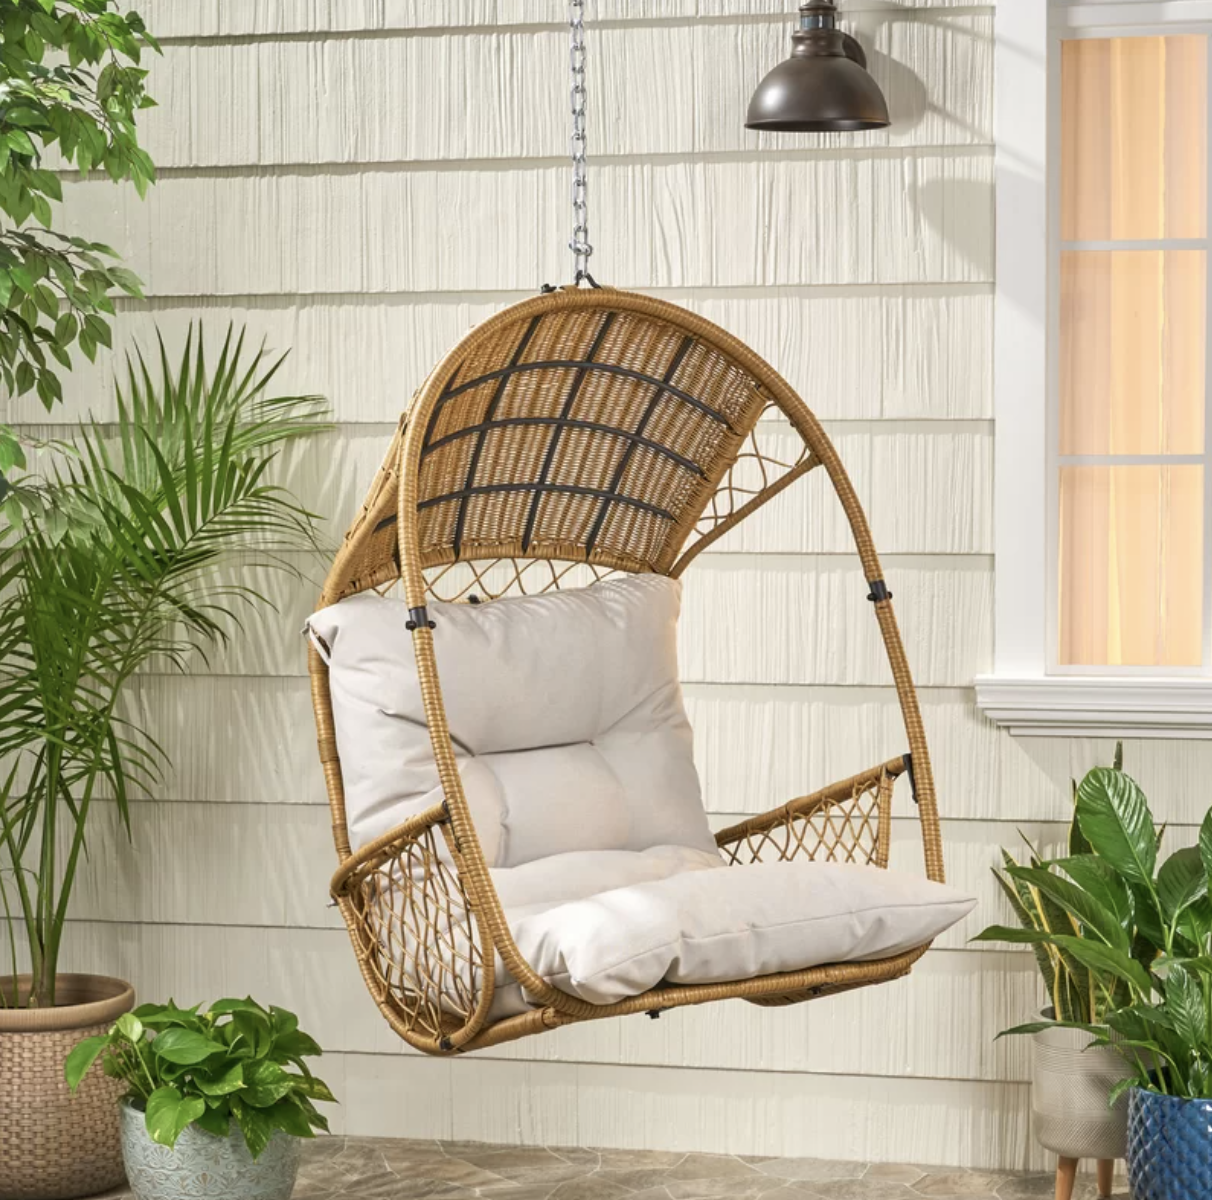 Berkshire Swing Chair With Cushion, Target Southport Patio Egg Chair, Target Southport Patio Egg Chair dupes, affordable dupes for the Target Southport Patio Egg Chair,egg chair inspiration, egg chair home ideas, egg chairs, wicker egg chairs, hanging egg chairs, target dupes, target furniture dupes, target patio furniture, Red Soles and Red Wine